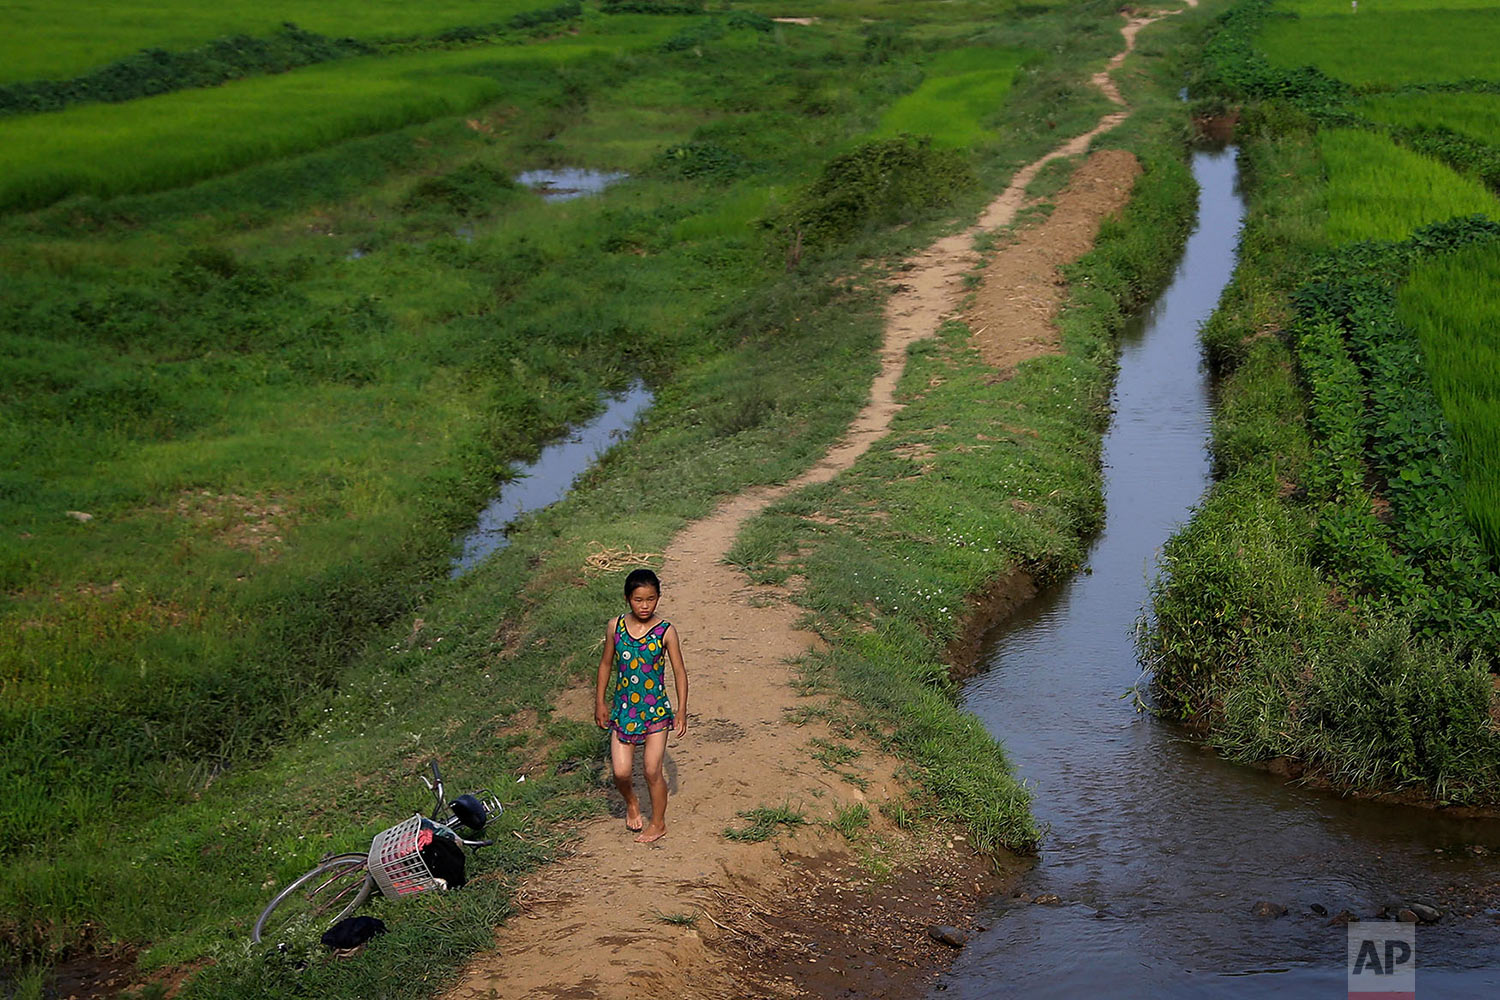 A young girl dressed in her swimming suit walks along a stream between fields in Hamju, North Korea, on July 20, 2017. (AP Photo/Wong Maye-E)